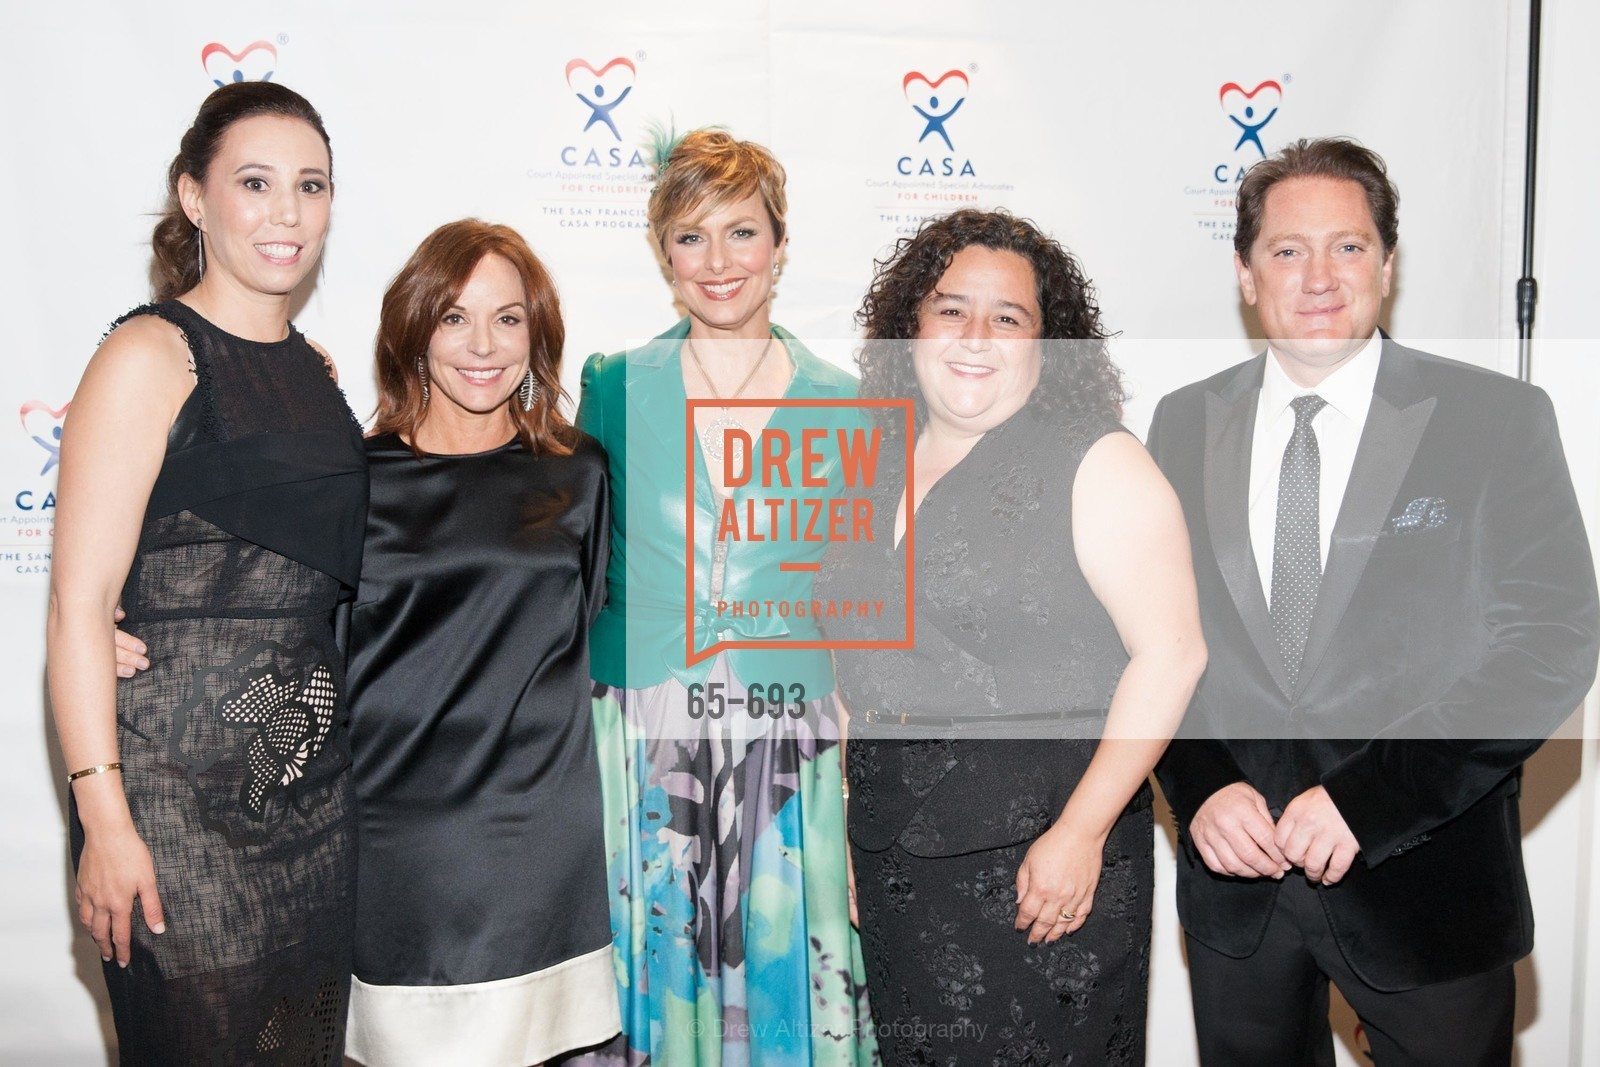 Allison Eisenhardt, Amanda Clarke, Melora Hardin, Renee Espinoza, Liam Mayclem, SFCASA'S Fostering Change Gala:  Room Without A Roof, US, May 2nd, 2015,Drew Altizer, Drew Altizer Photography, full-service event agency, private events, San Francisco photographer, photographer California